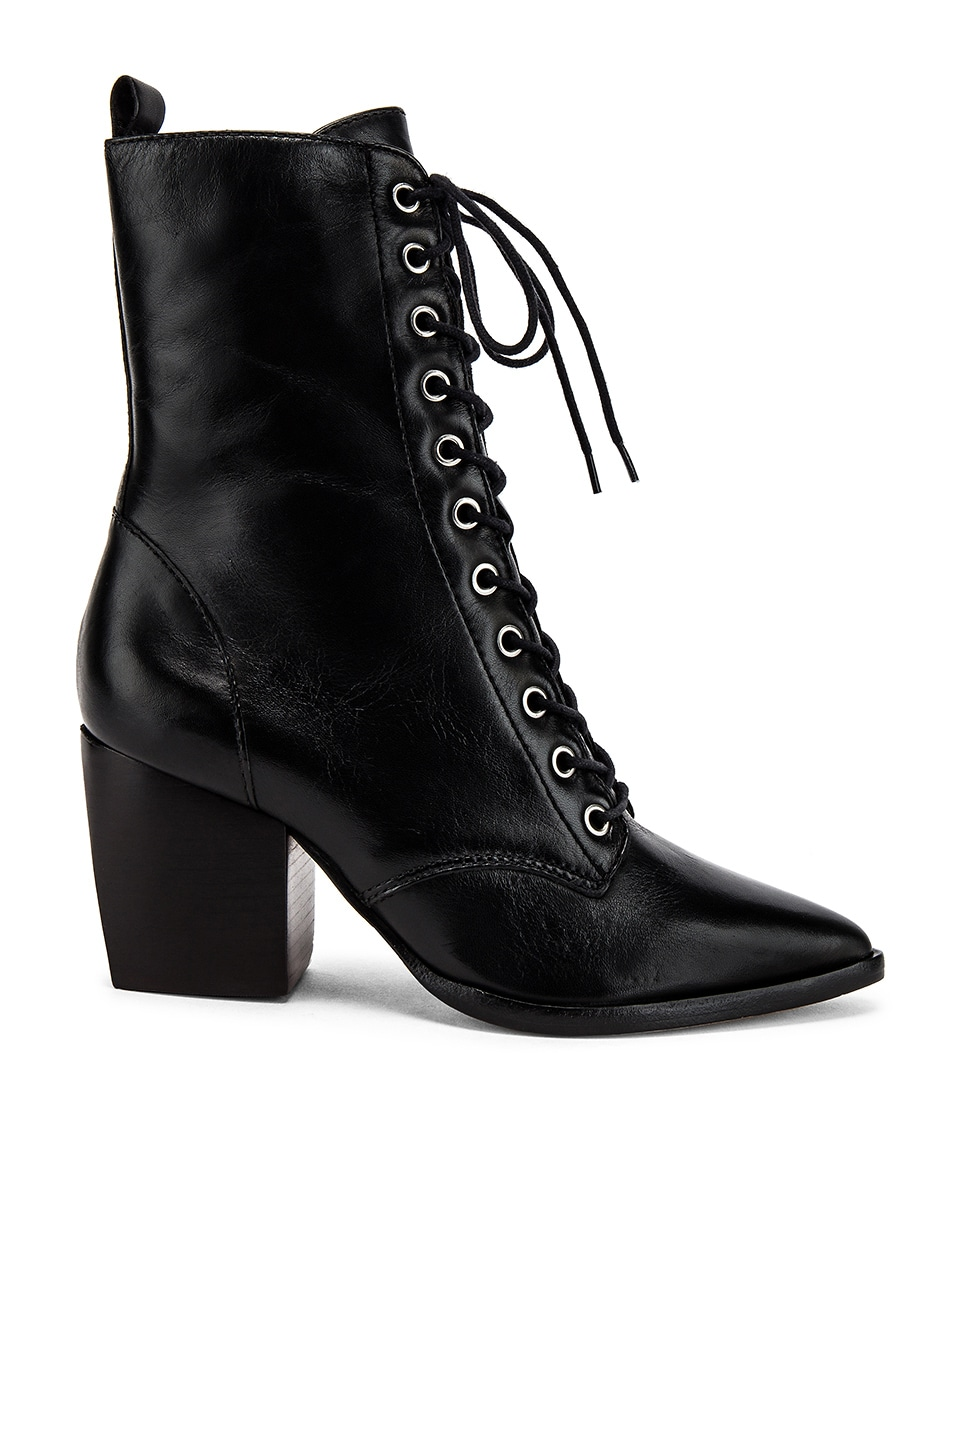 Schutz Lace Up Boot in Black